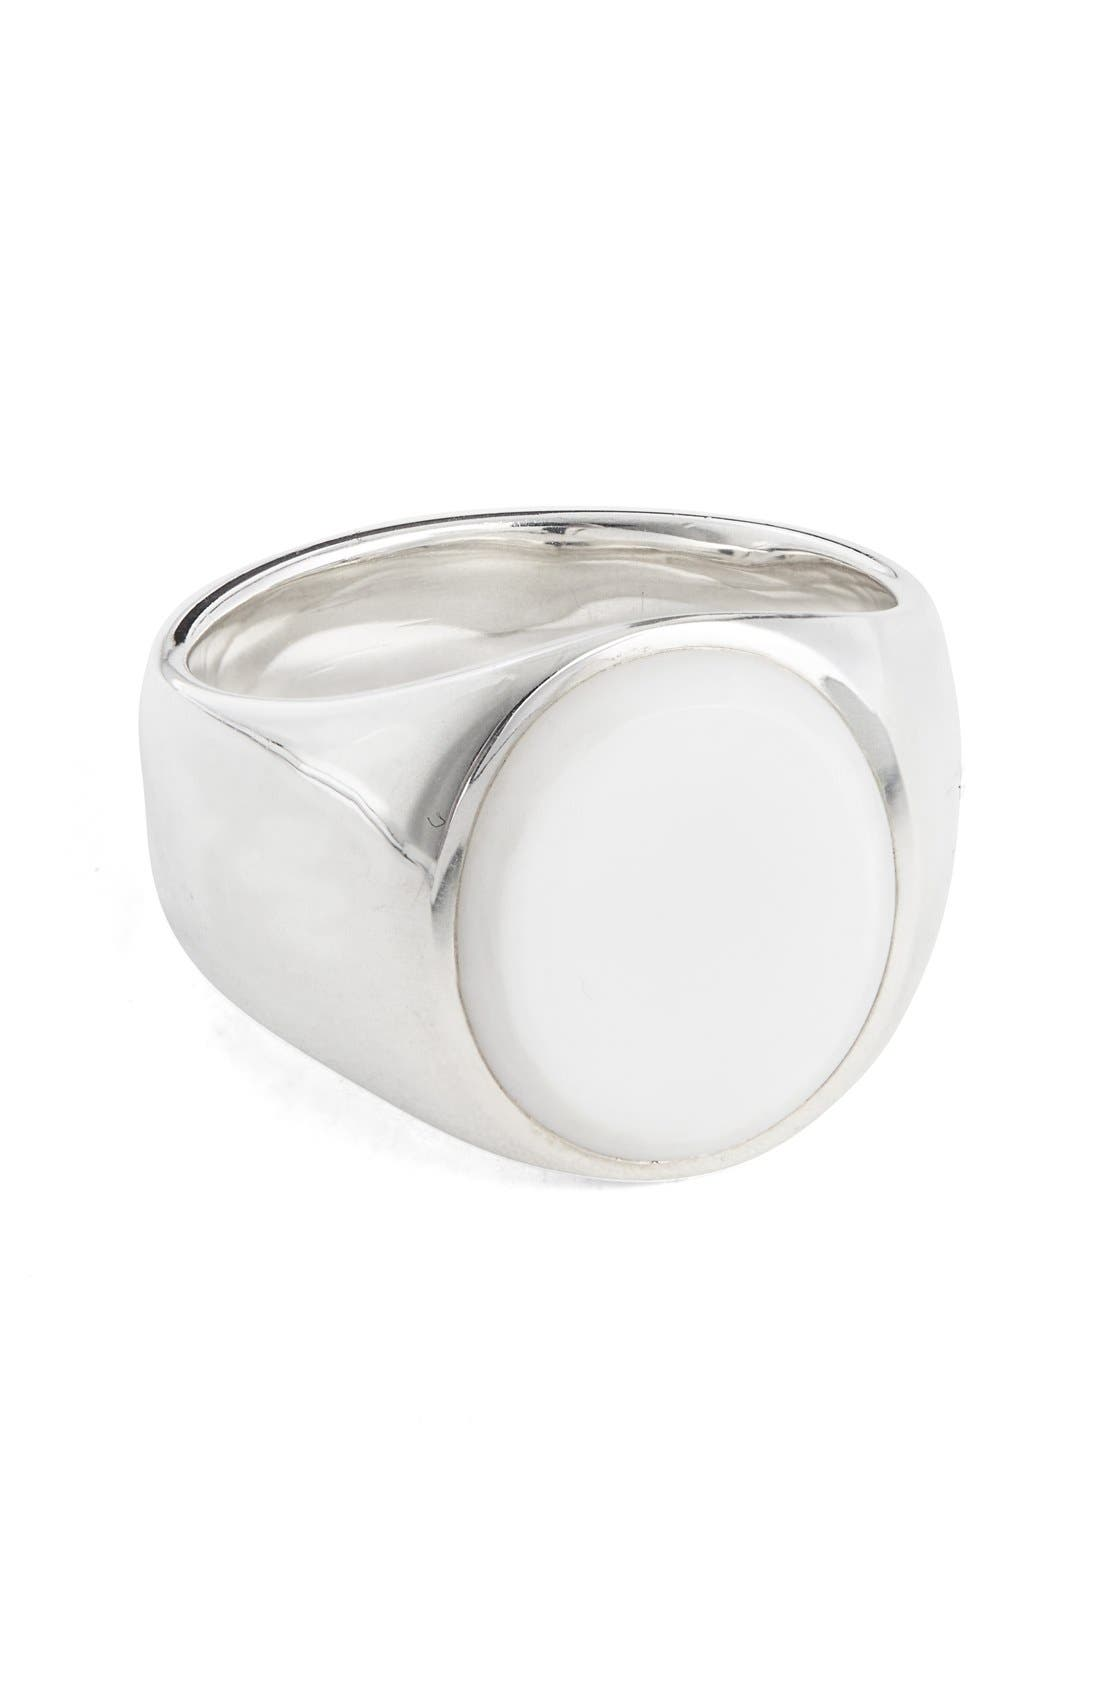 Tom Wood 'Patriot Collection' Oval White Agate Signet Ring